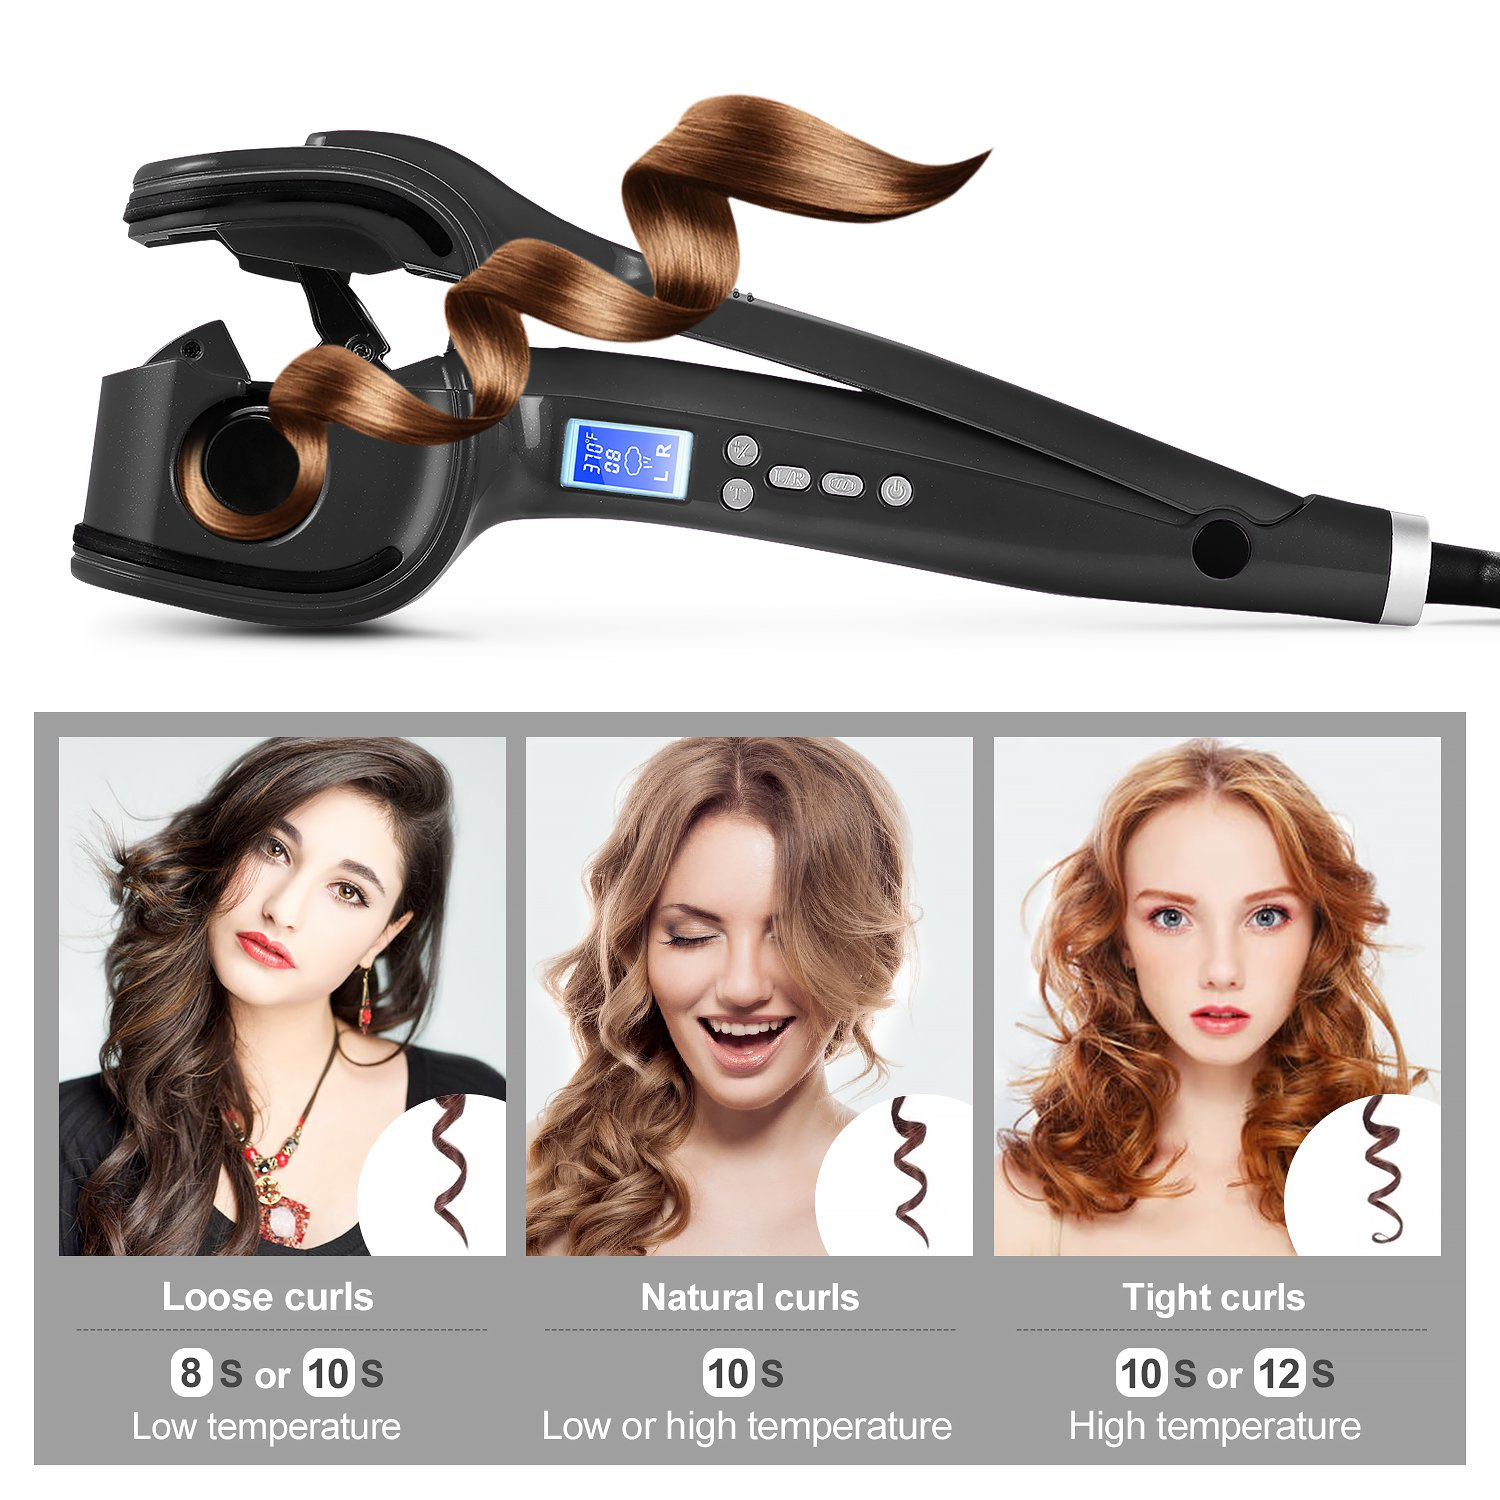 Amazon.com: Natalie Styx Automatic Curler with Steam Function Professional Salon Tools for lady, Black: Beauty